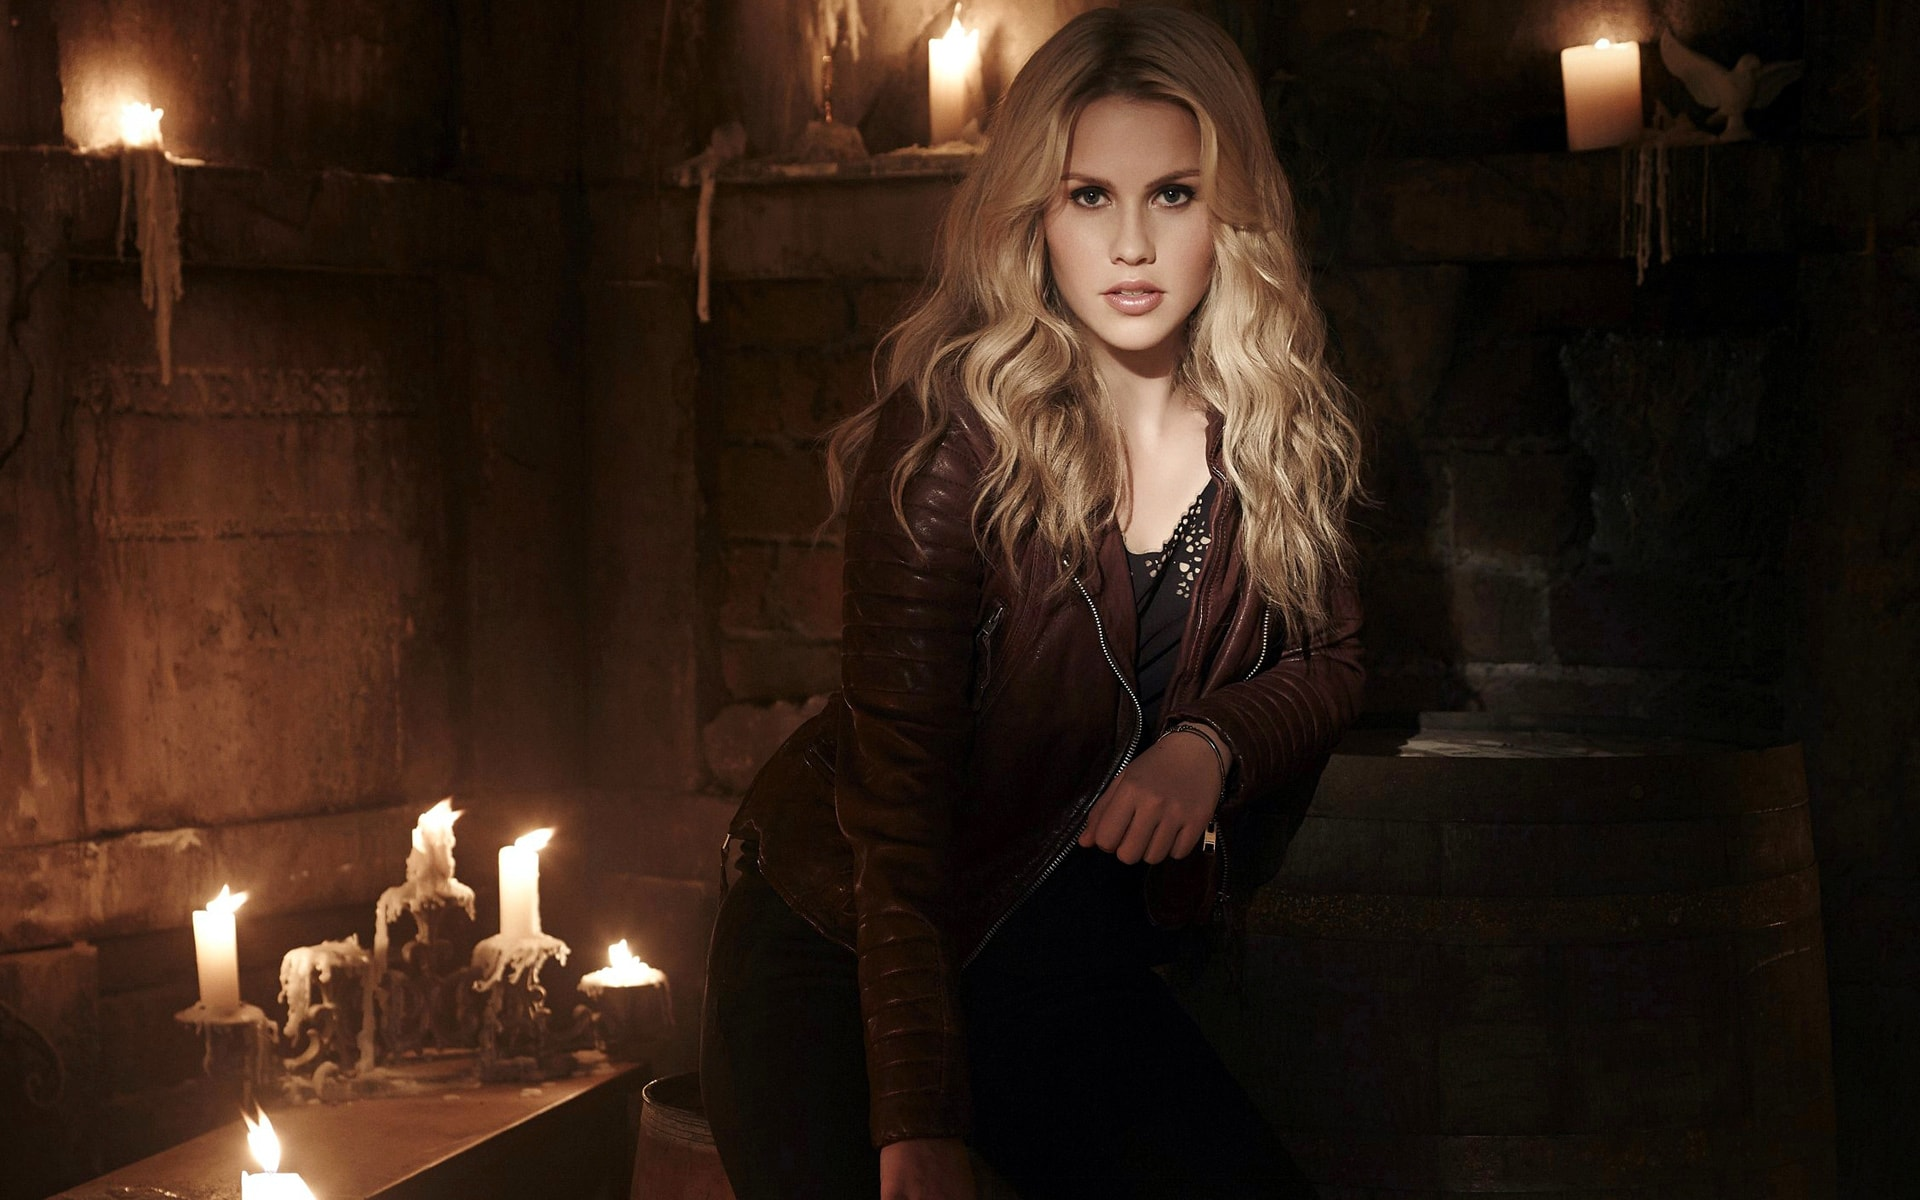 Claire Holt Background